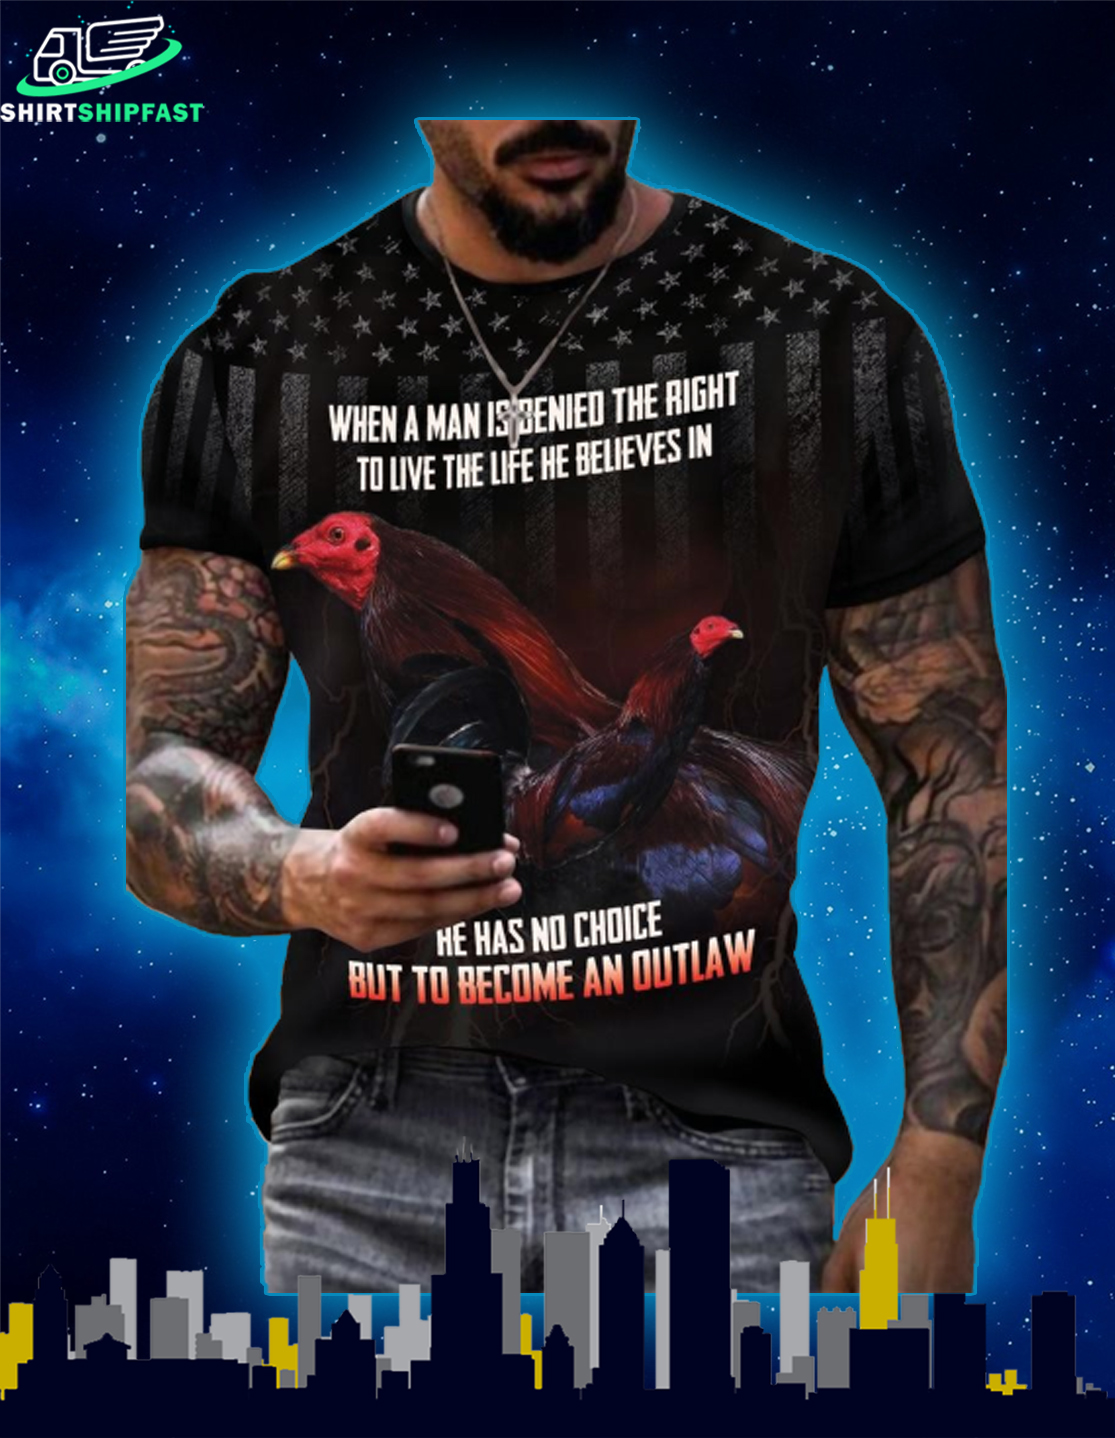 Kelso US When a man is denied the right to live the life he believes in 3d t-shirt - Picture 2